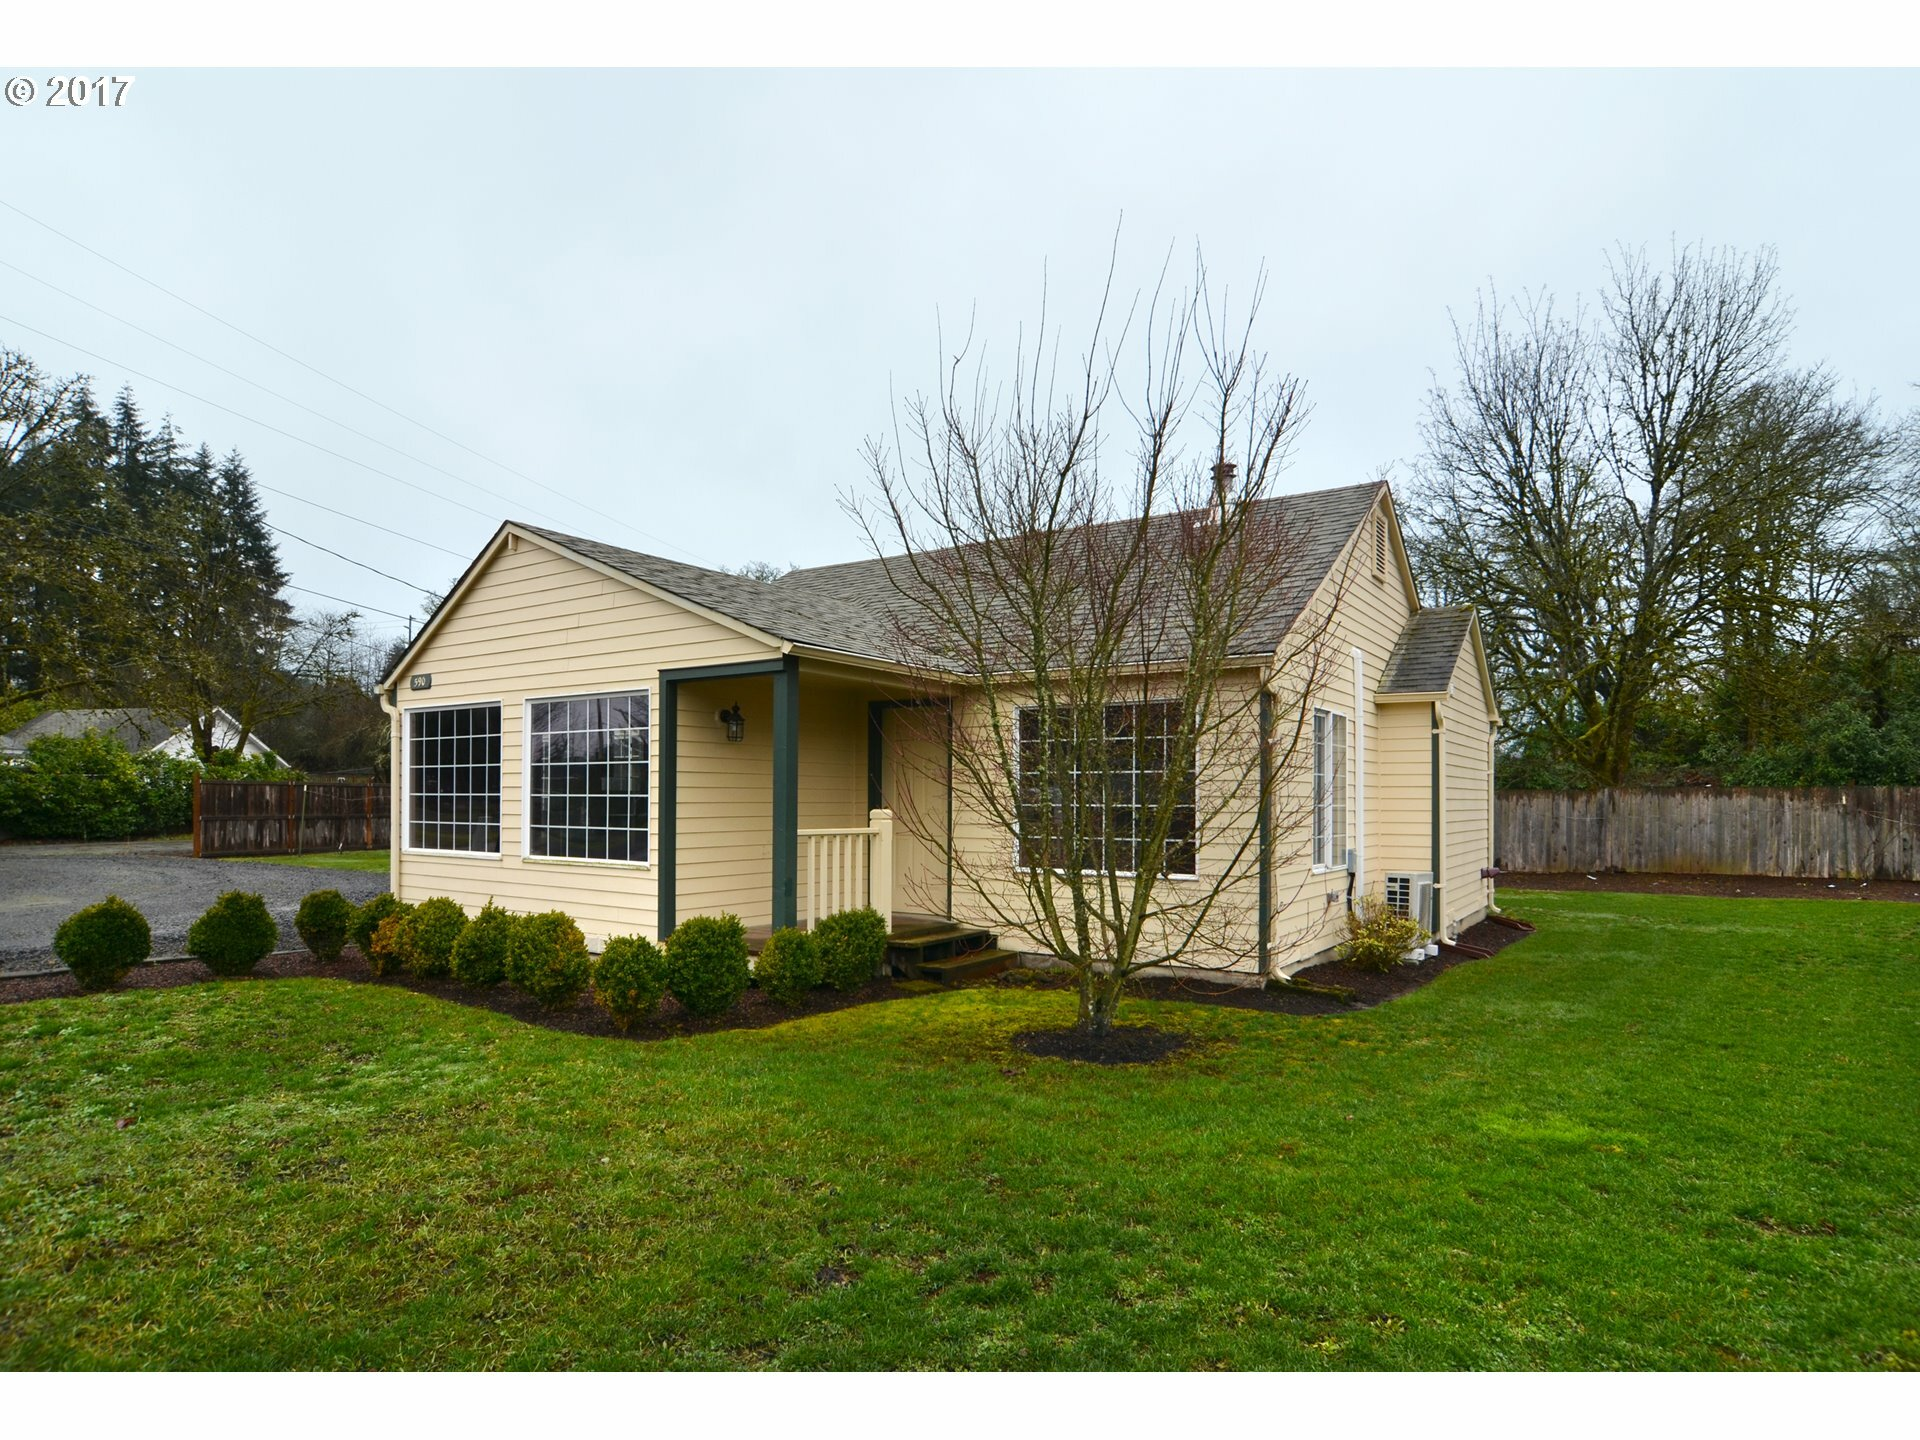 590 S 46th St, Springfield, OR - USA (photo 1)